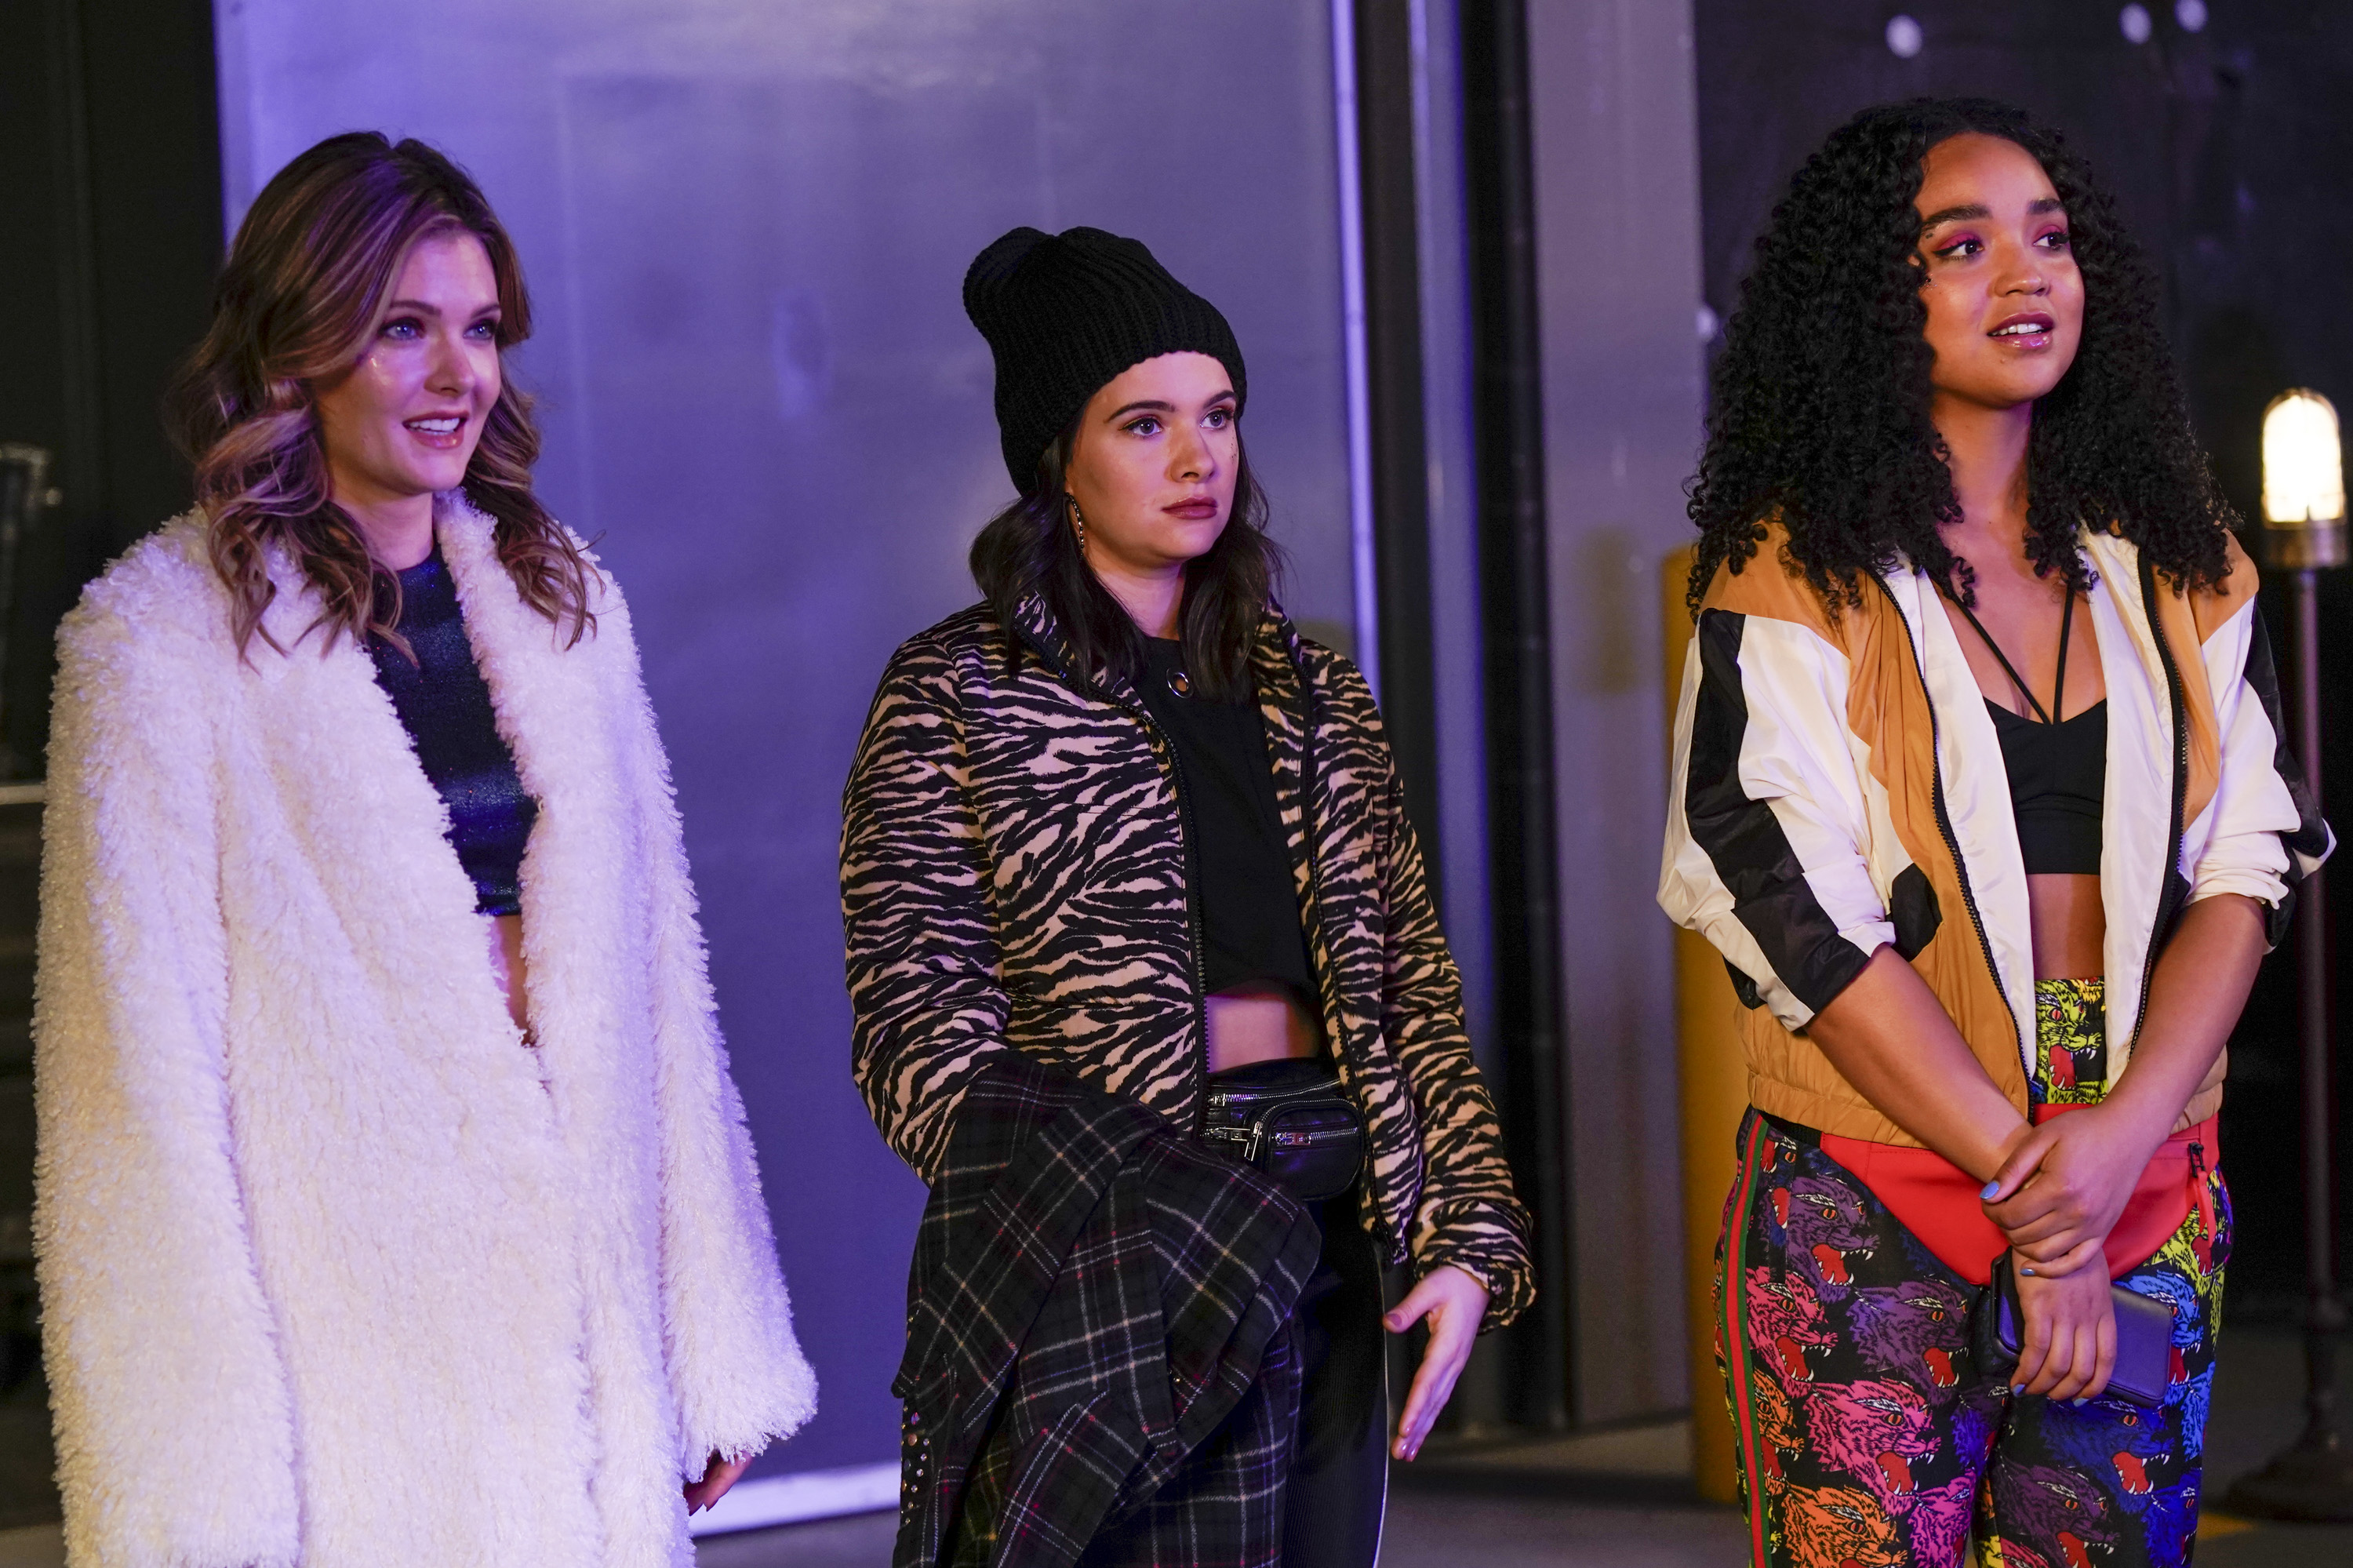 """Left to right, Meghann Fahy, Katie Stevens and Aisha Dee in """"The Bold Type."""" (Courtesy Freeform)"""